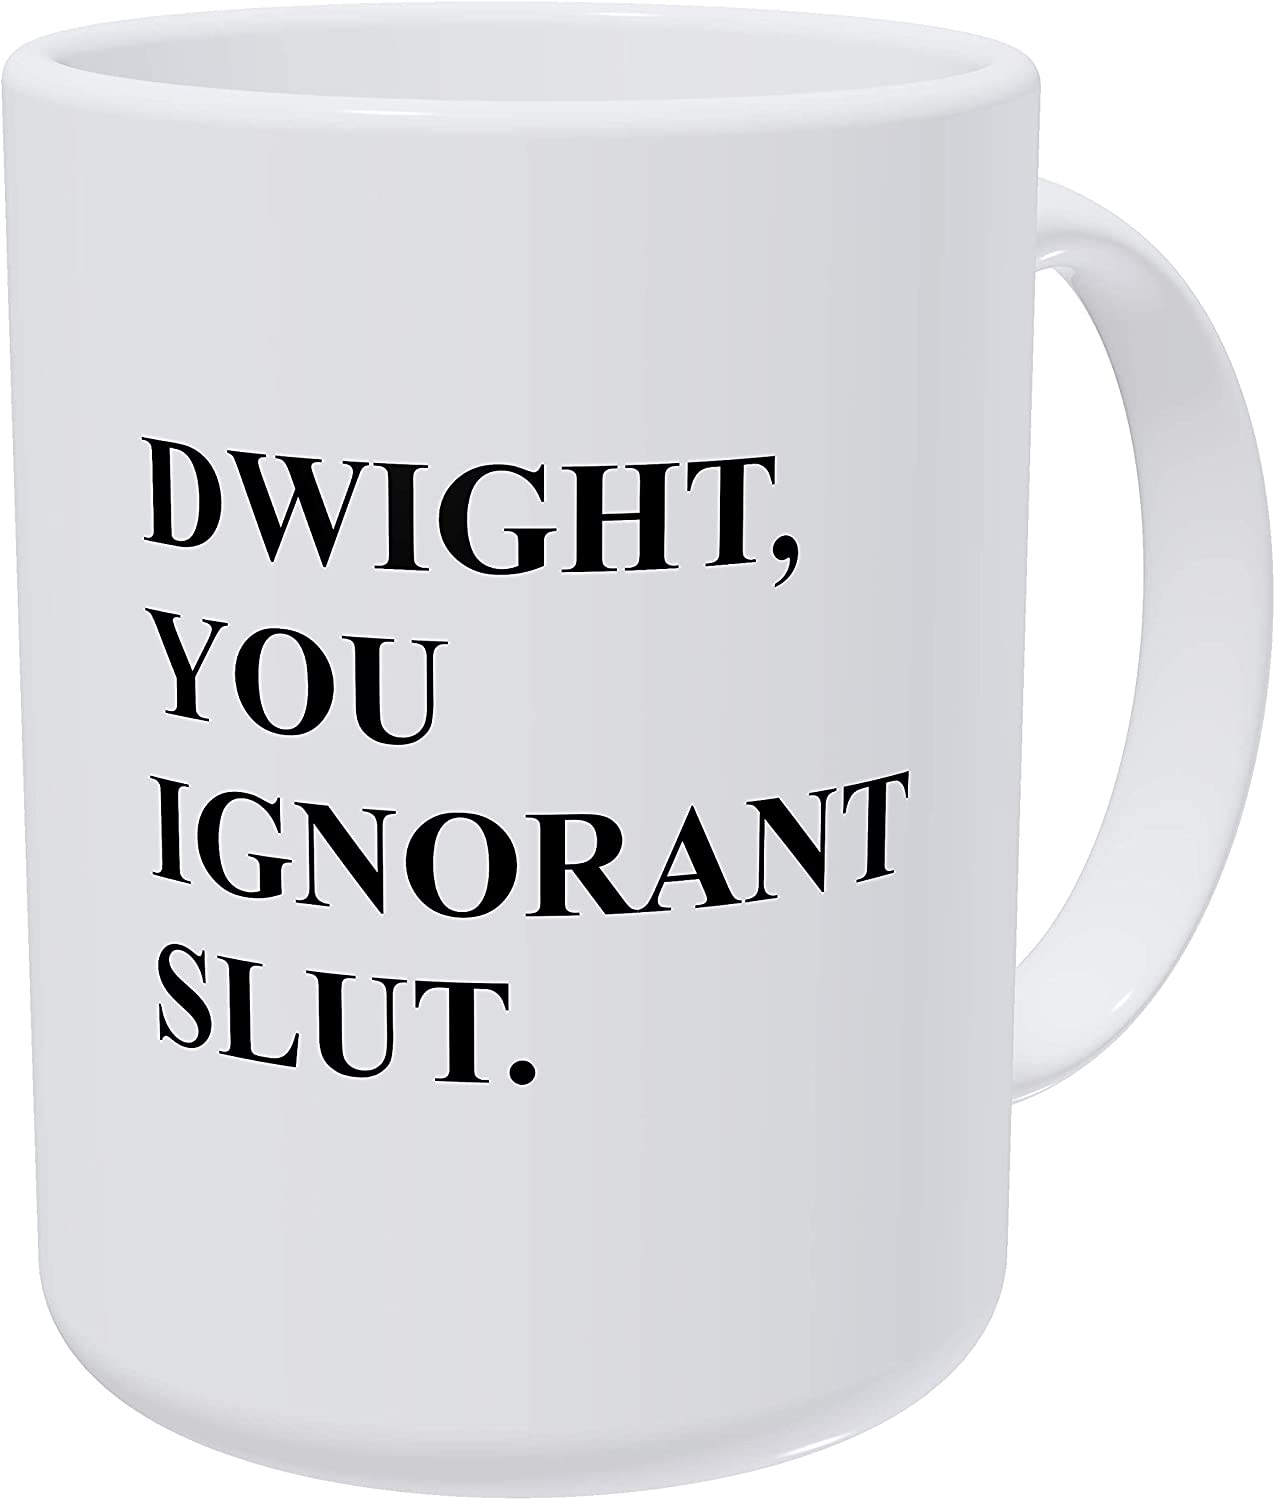 Willcallyou Dwight You Ignorant Michael Scott's Safety Training The Office 15 Ounces Double Side Printed Funny White Coffee Mug